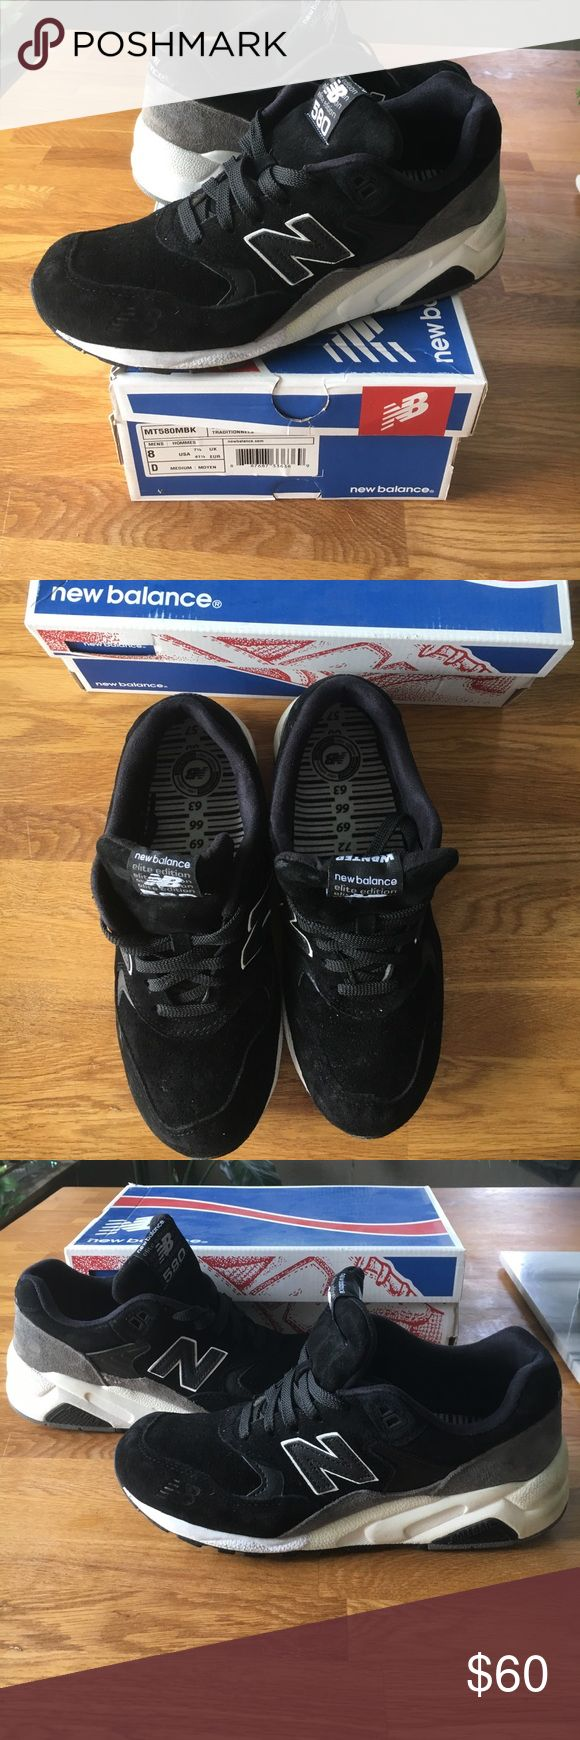 New Balance New Balance elite edition 850. Classic traditionnels, black/grey suede with roll bar sole. Light scuffing on heel of soles from wearing. Great condition and very comfortable shoe New Balance Shoes Sneakers